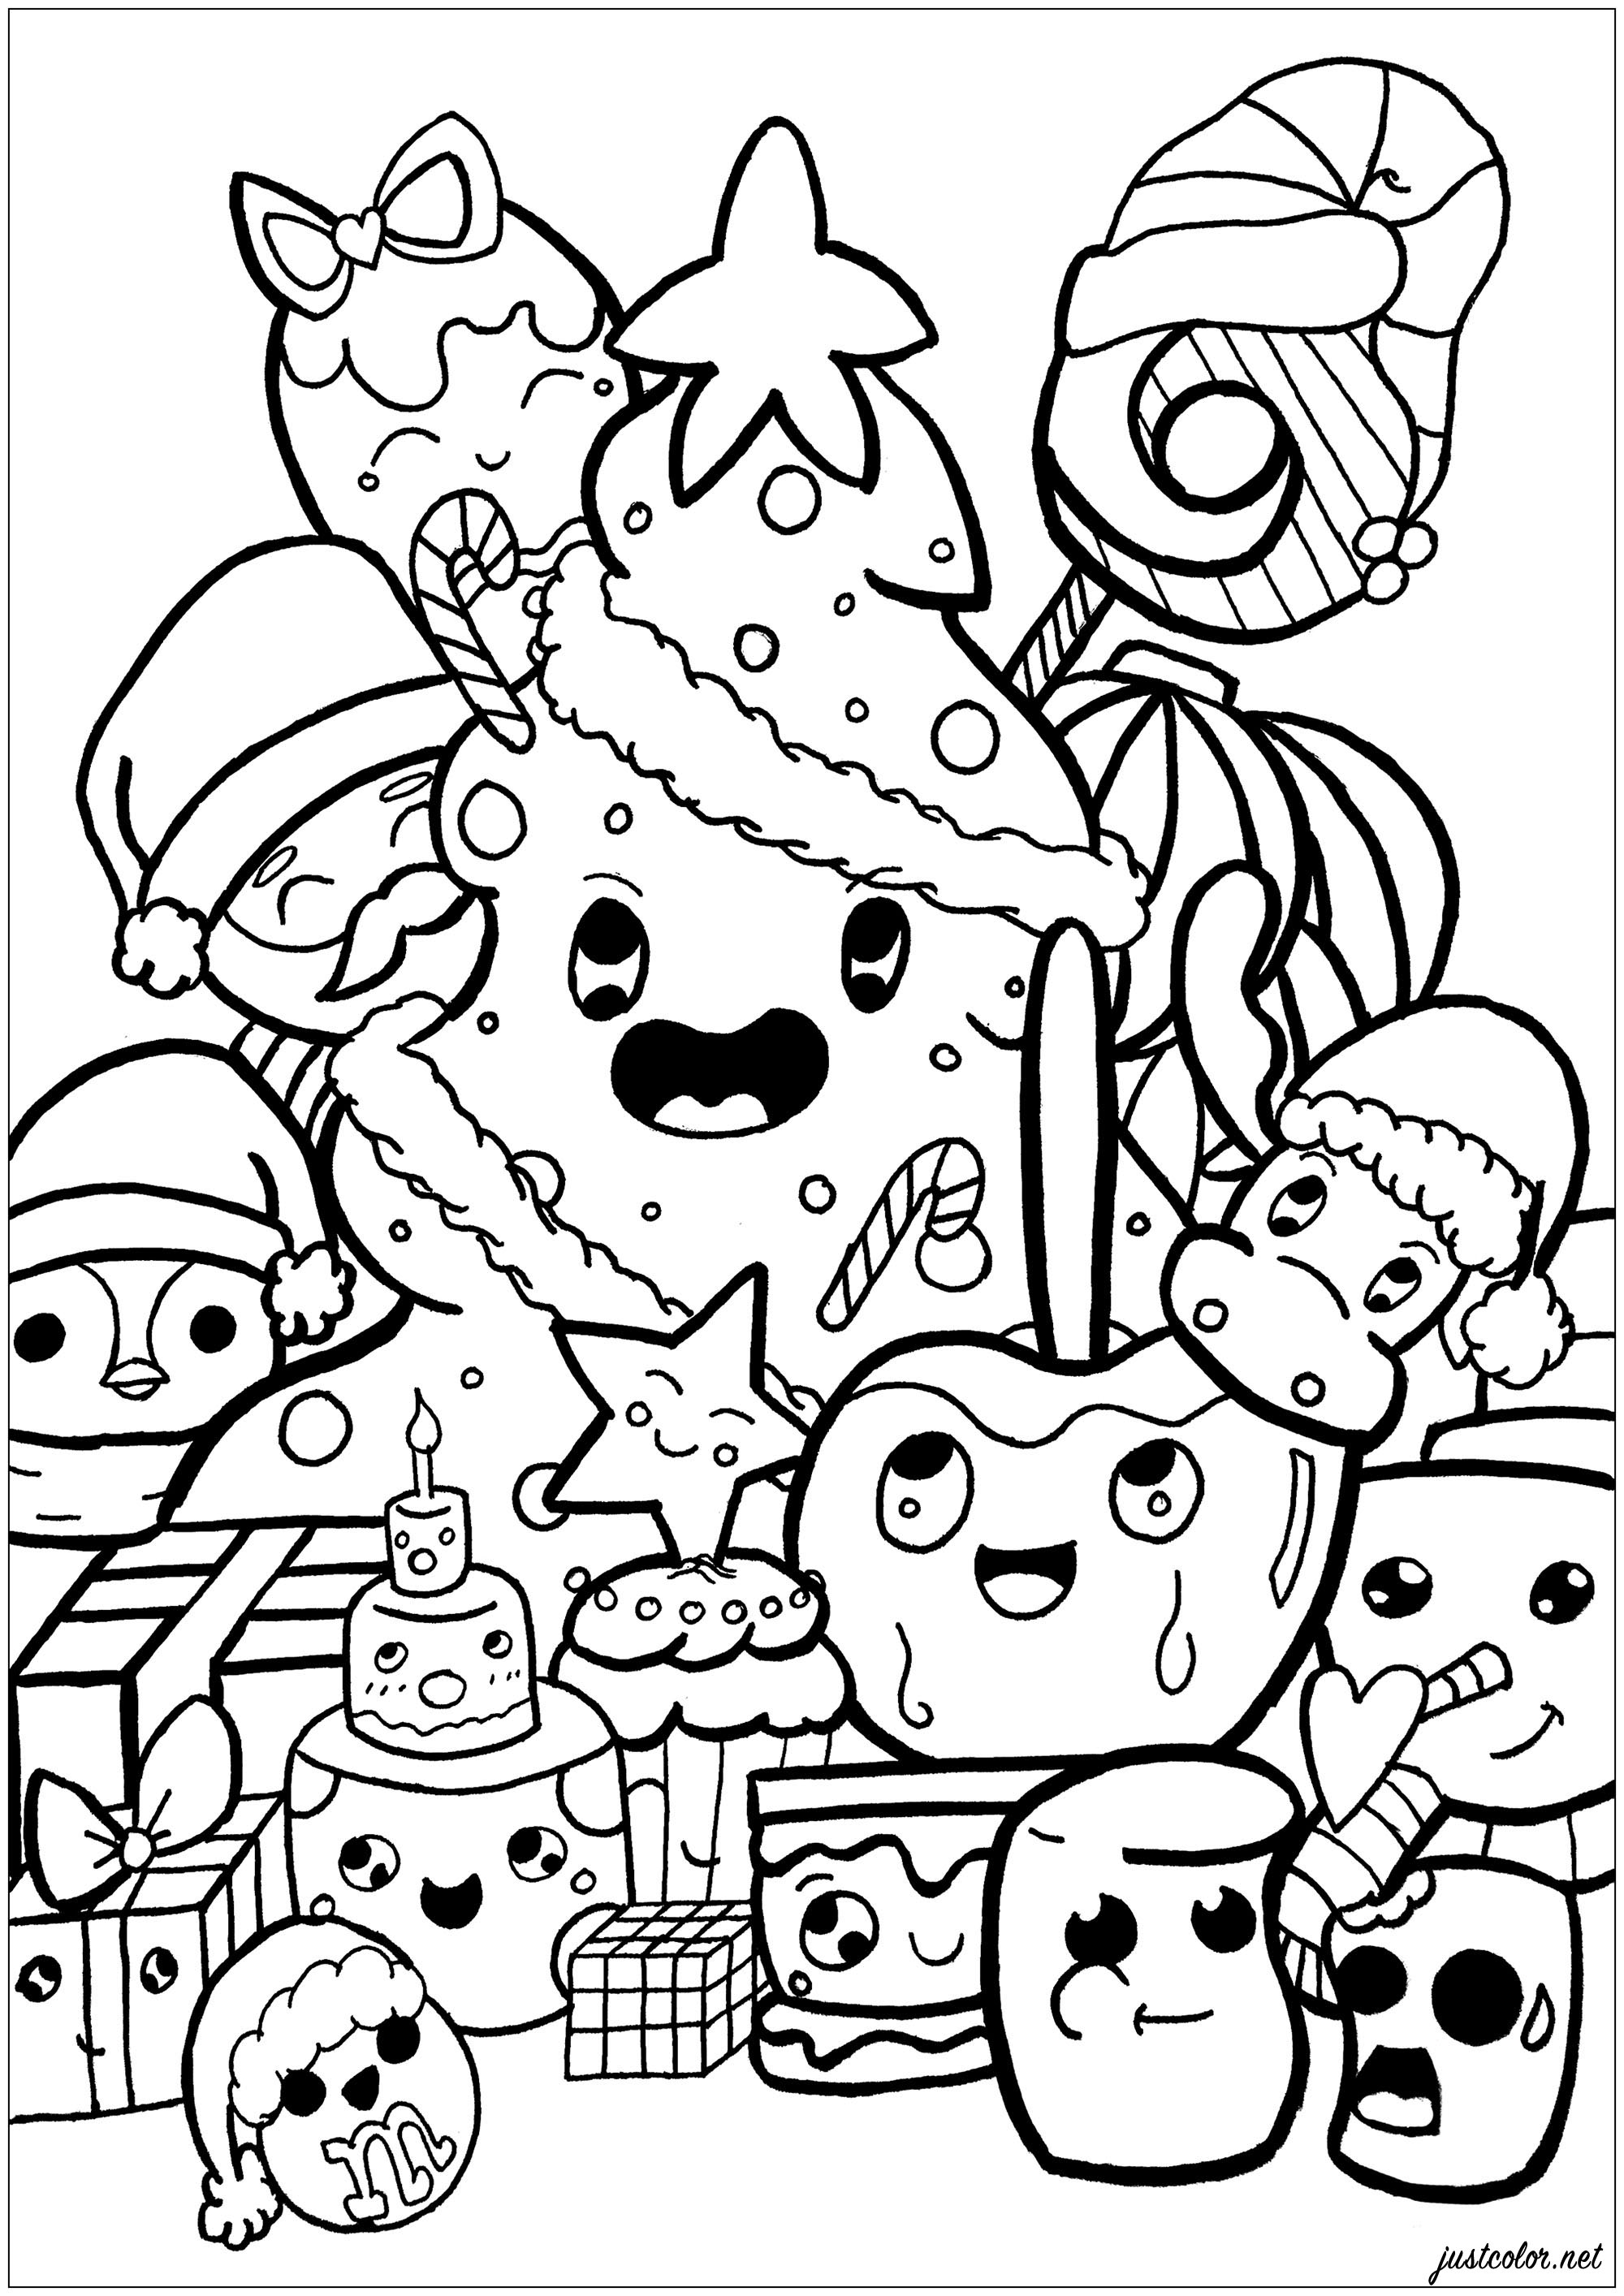 doodle pages free doodle art coloring pages coloring home doodle pages